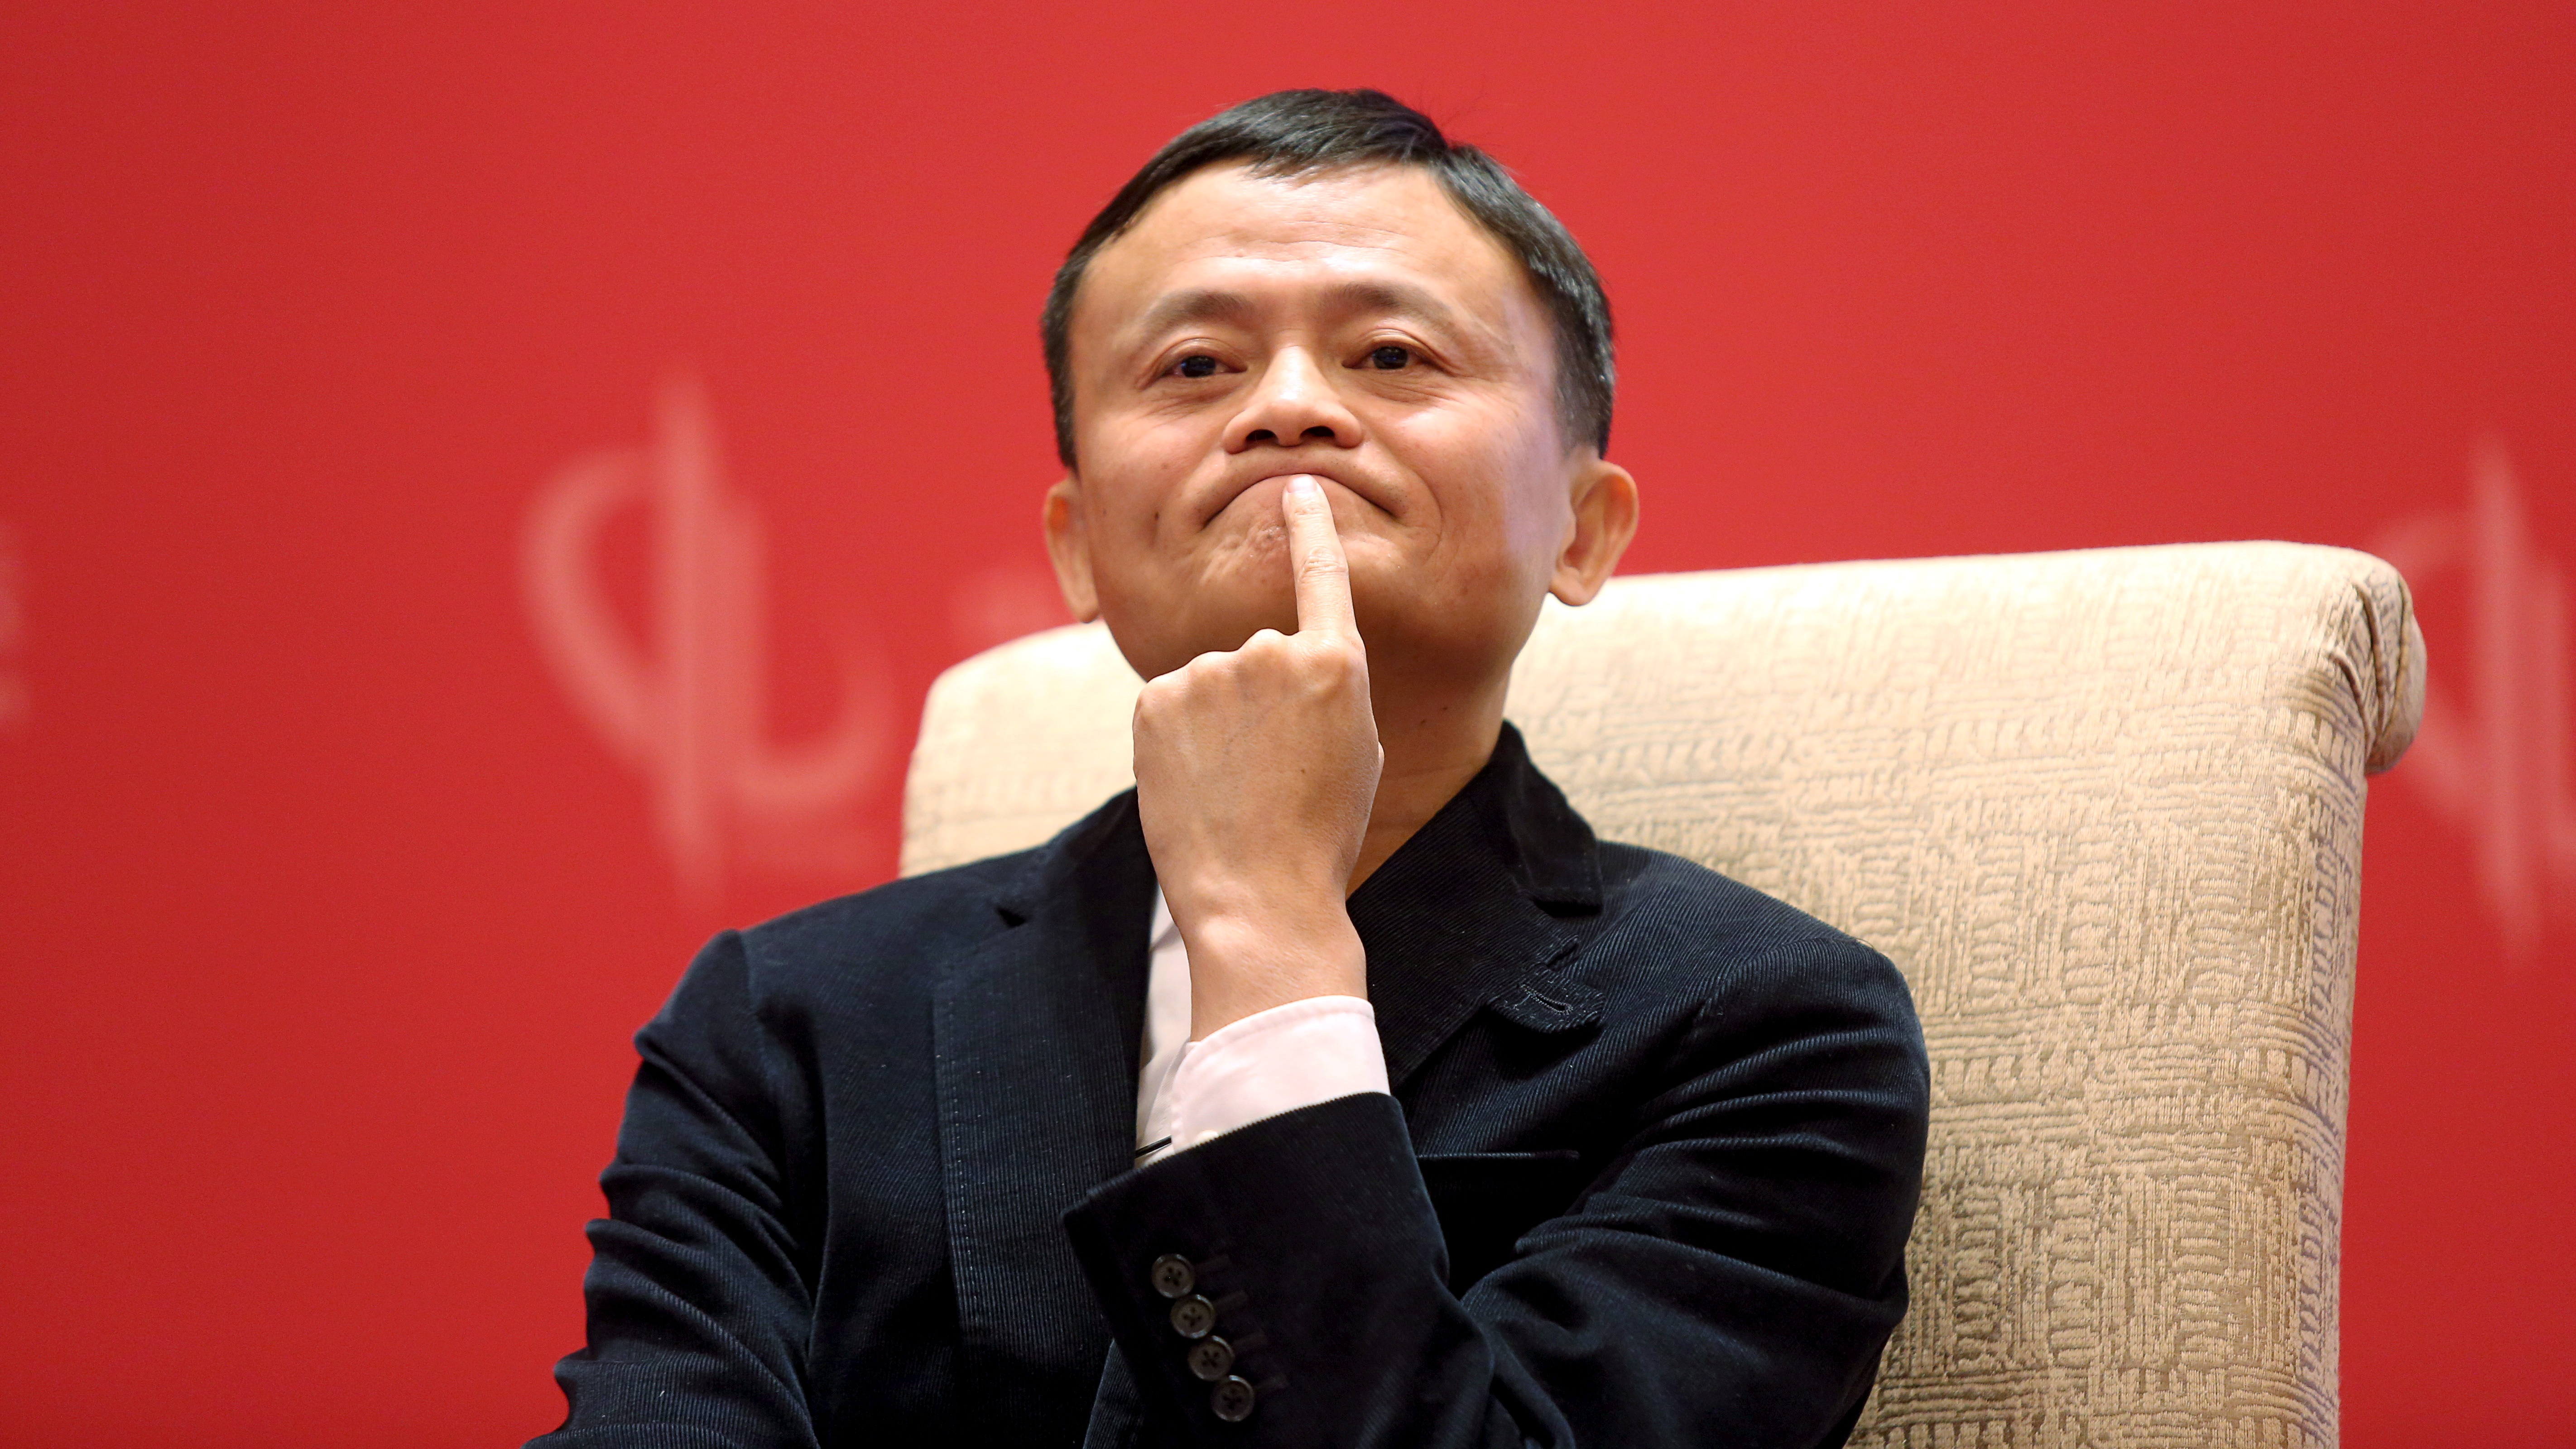 Founder and Executive Chairman of Alibaba Group Jack Ma meets Facebook founder and CEO Mark Zuckerberg (not pictured), at the China Development Forum in Beijing, China, March 19, 2016. REUTERS/Shu Zhang/File Photo